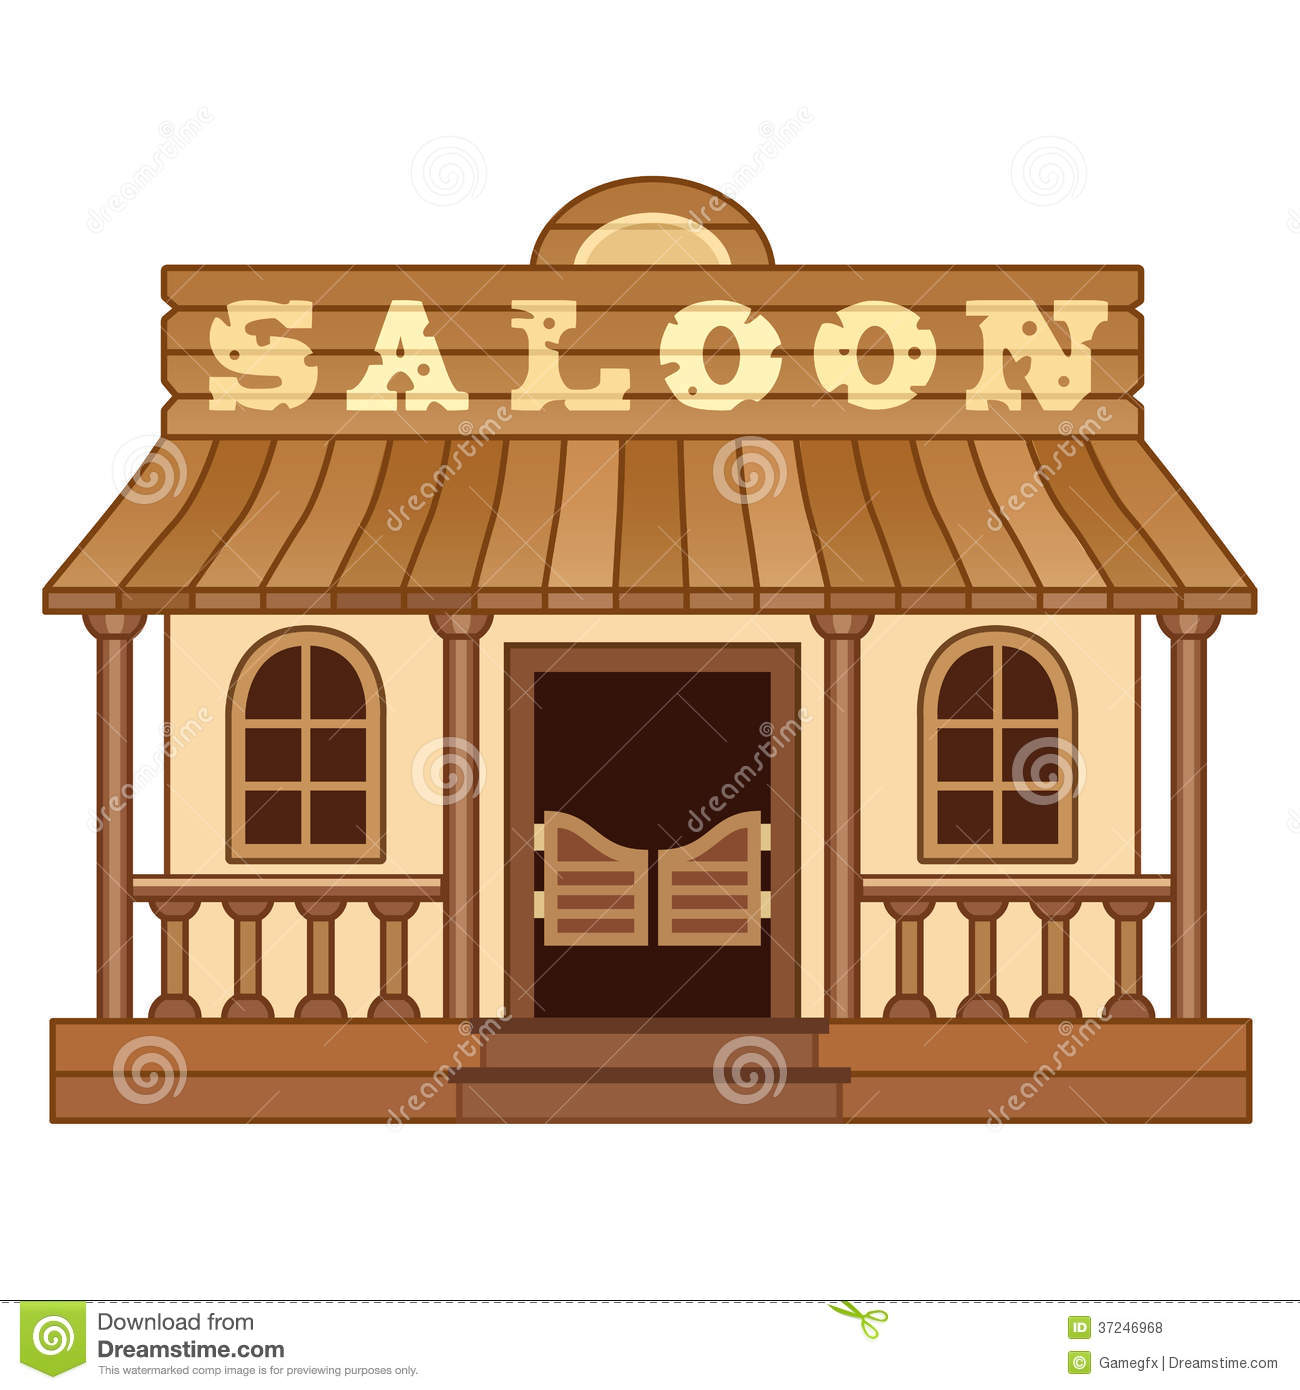 Wild West clipart saloon door Cliparts Western Saloon Clipart Saloon